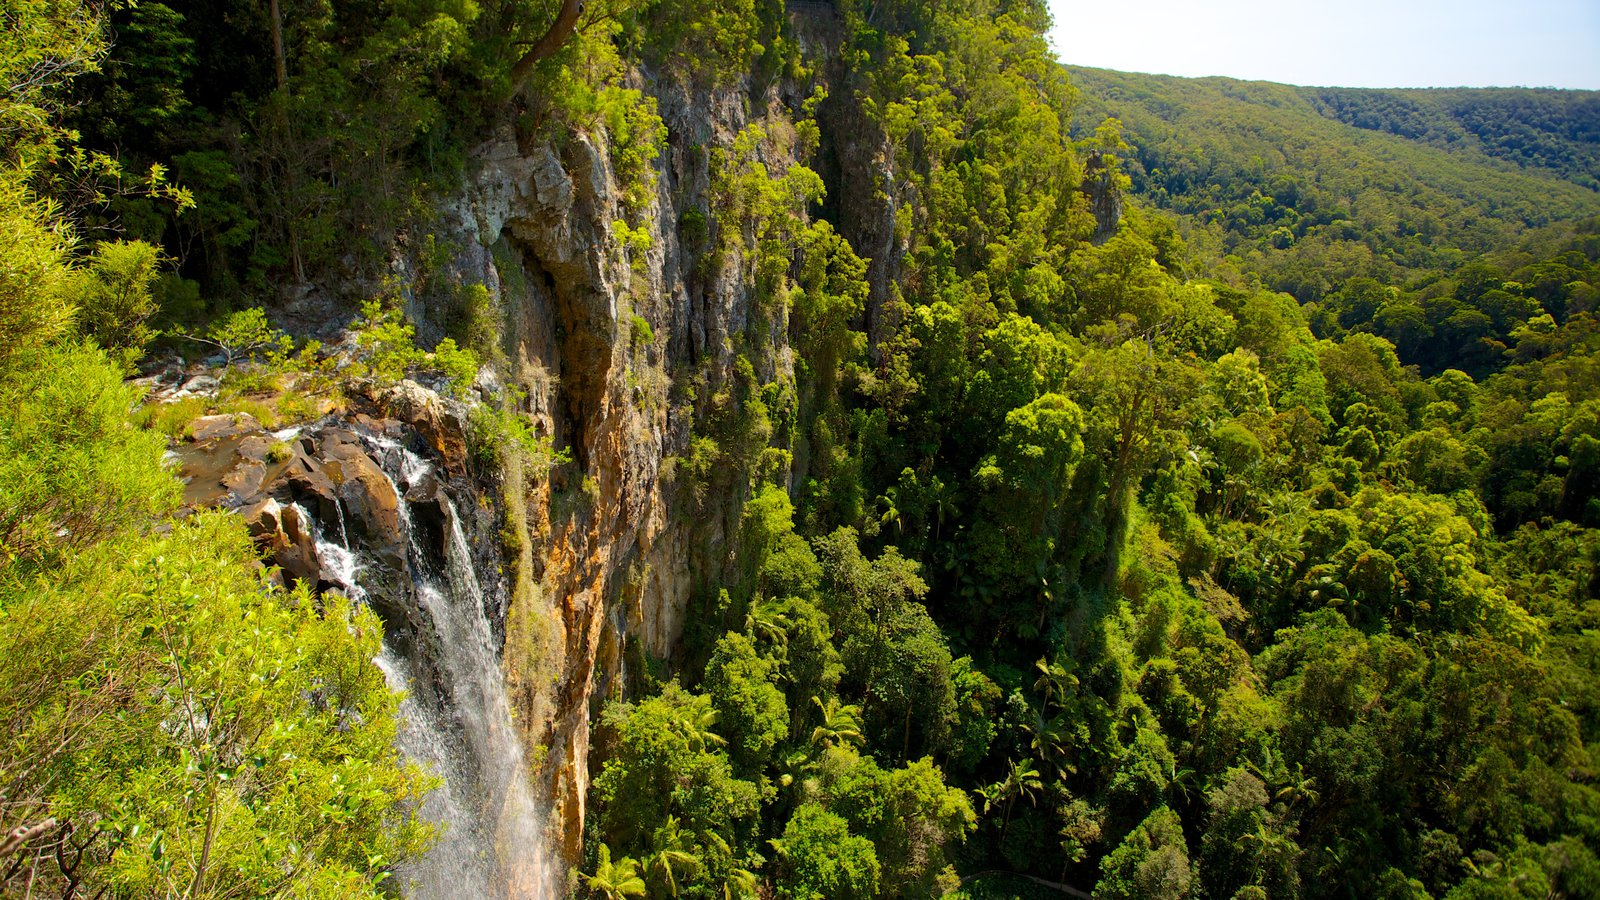 Springbrook National Park which includes mountains, landscape views and a waterfall